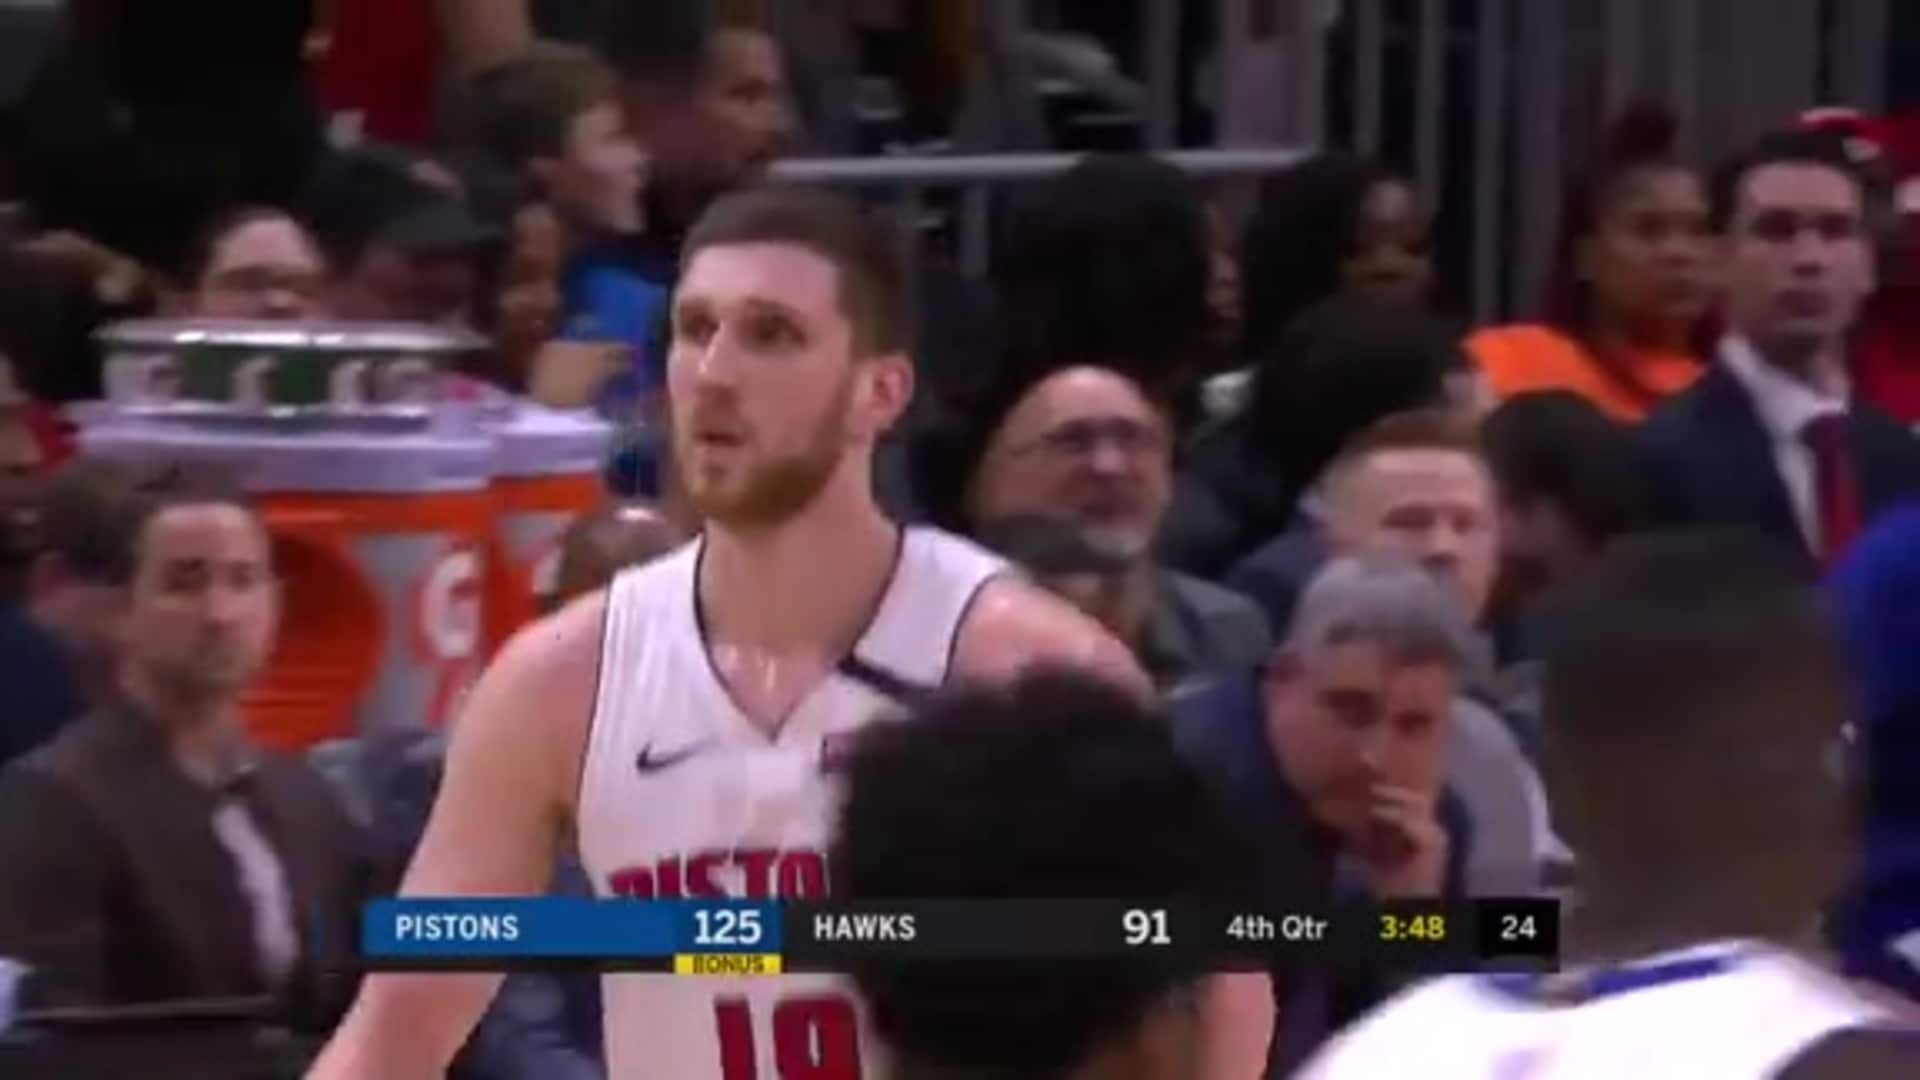 #Trending: Svi's Big Night